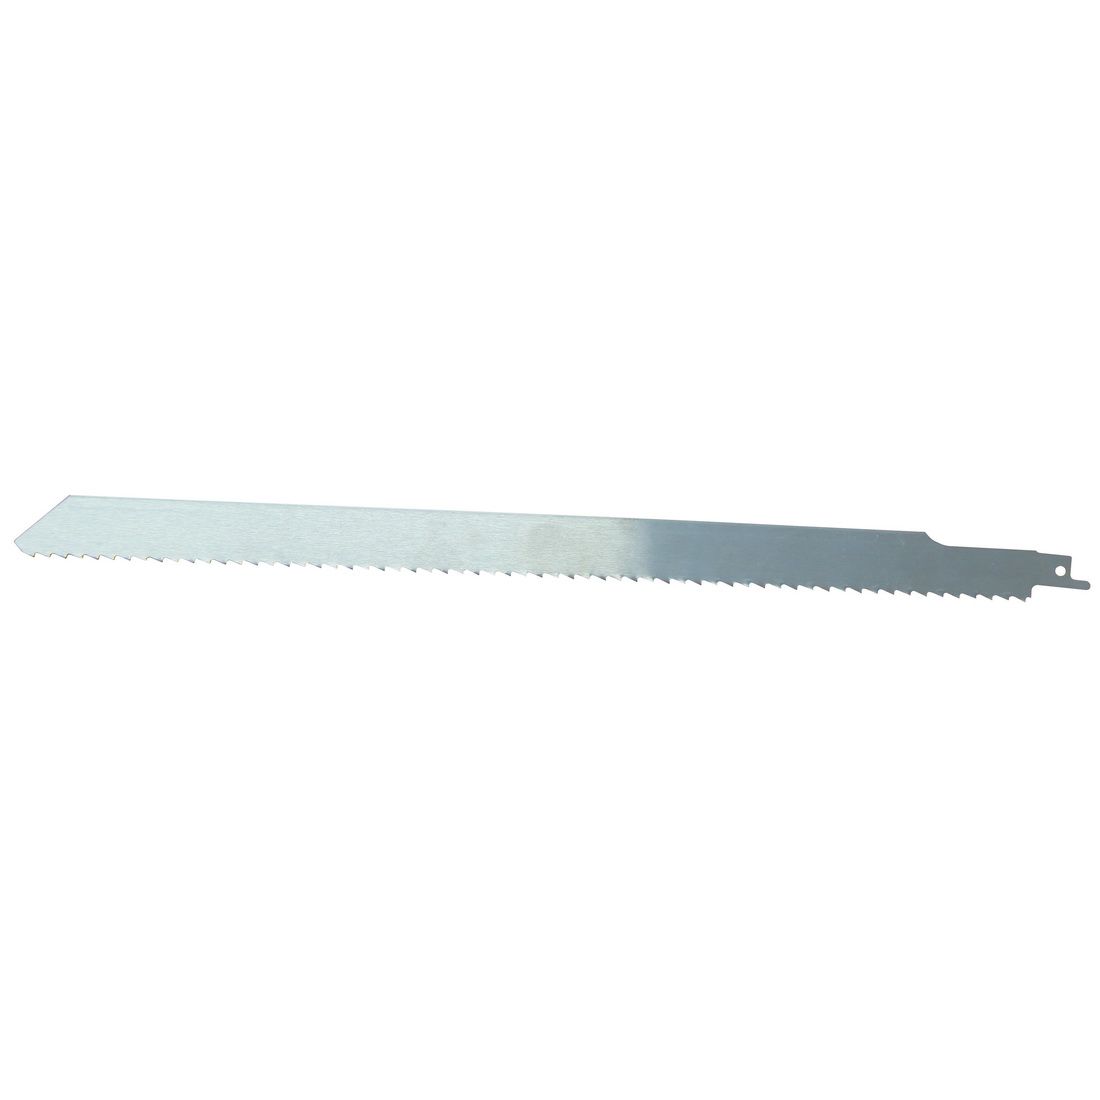 Stainless Steel Cutting Blade 400mm